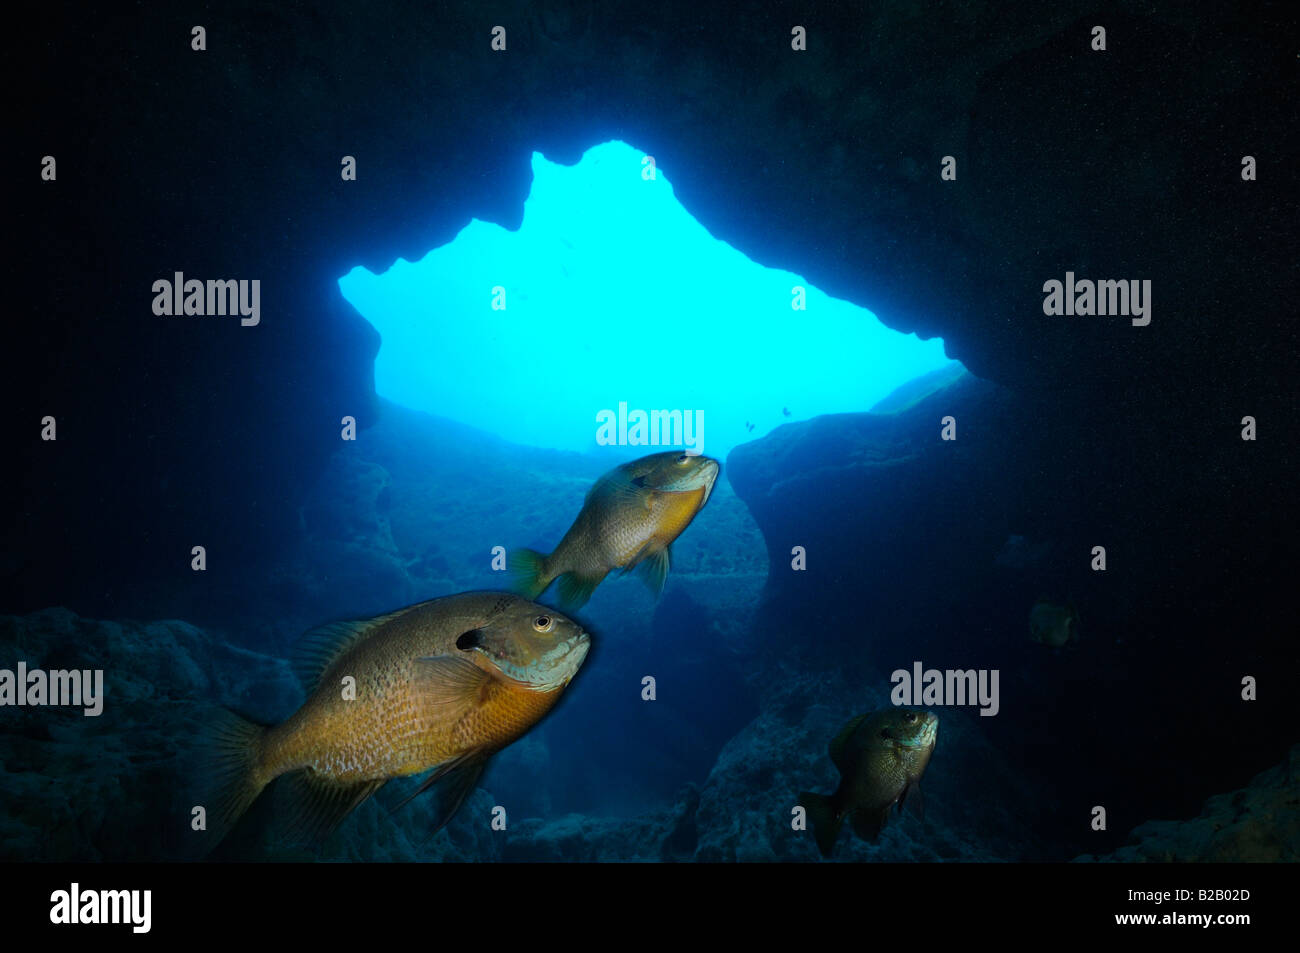 Bluegill Lepomis macrochirus Florida Stock Photo